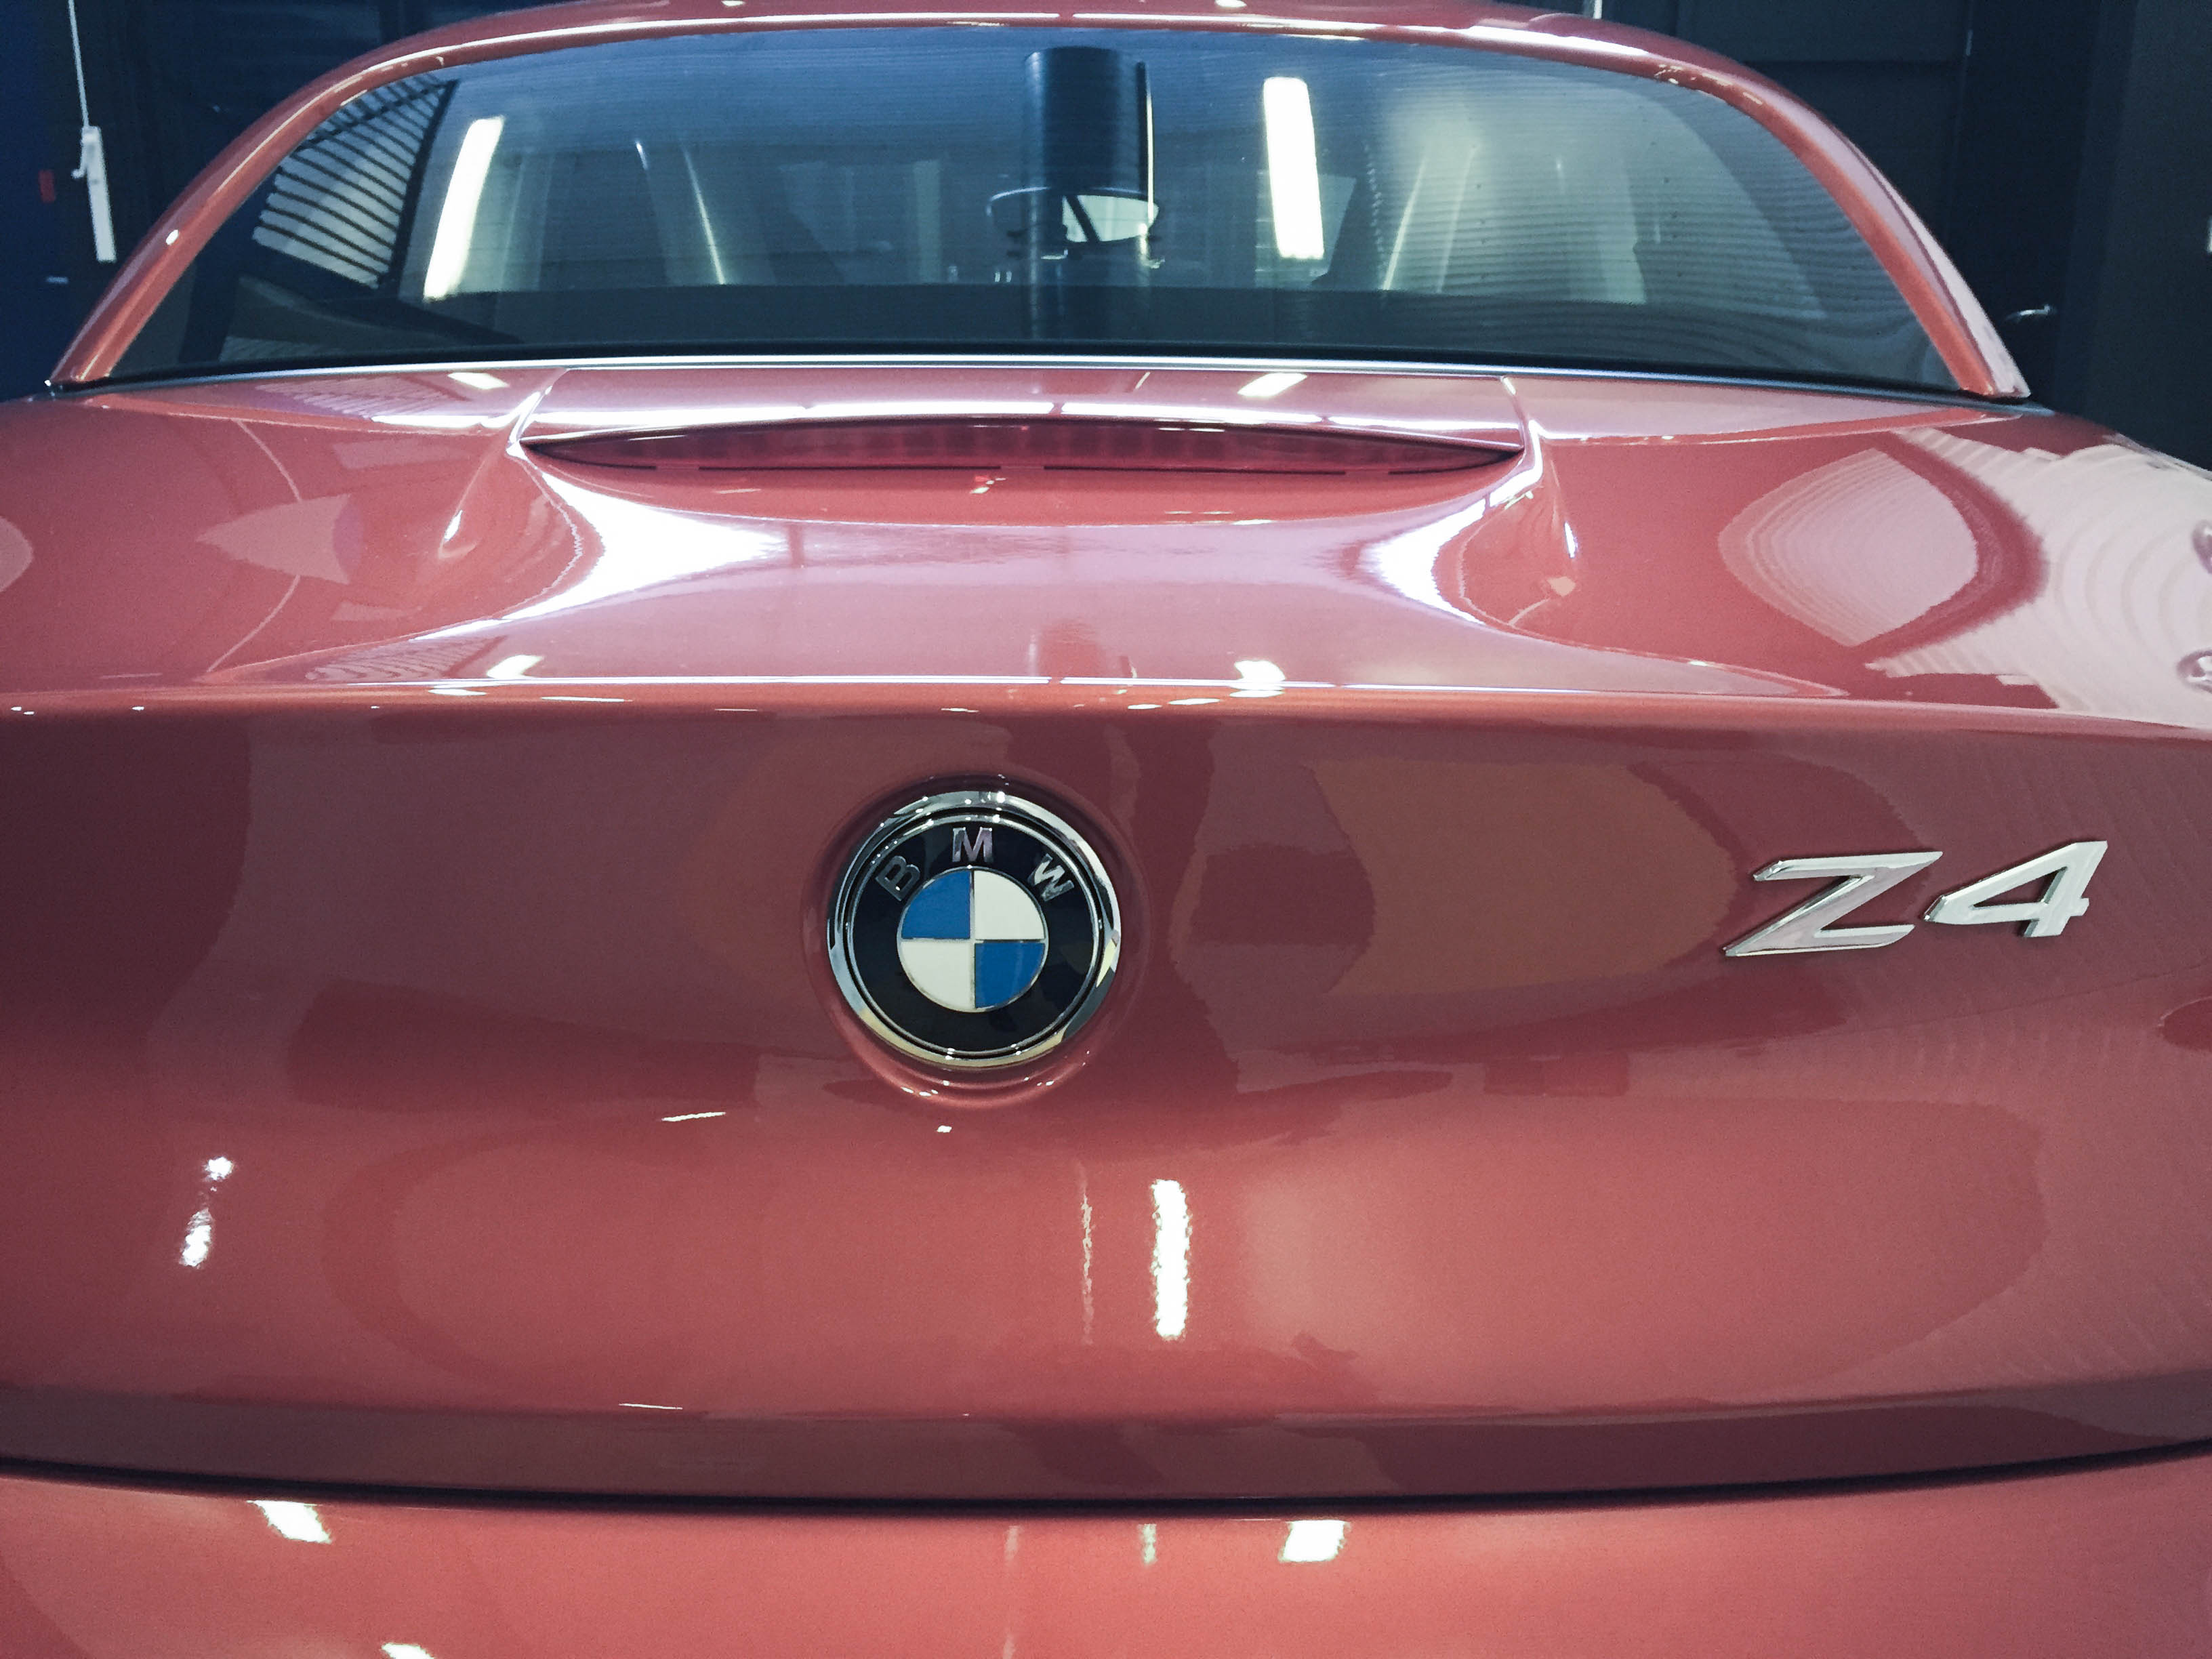 BMW Z4 – Badge